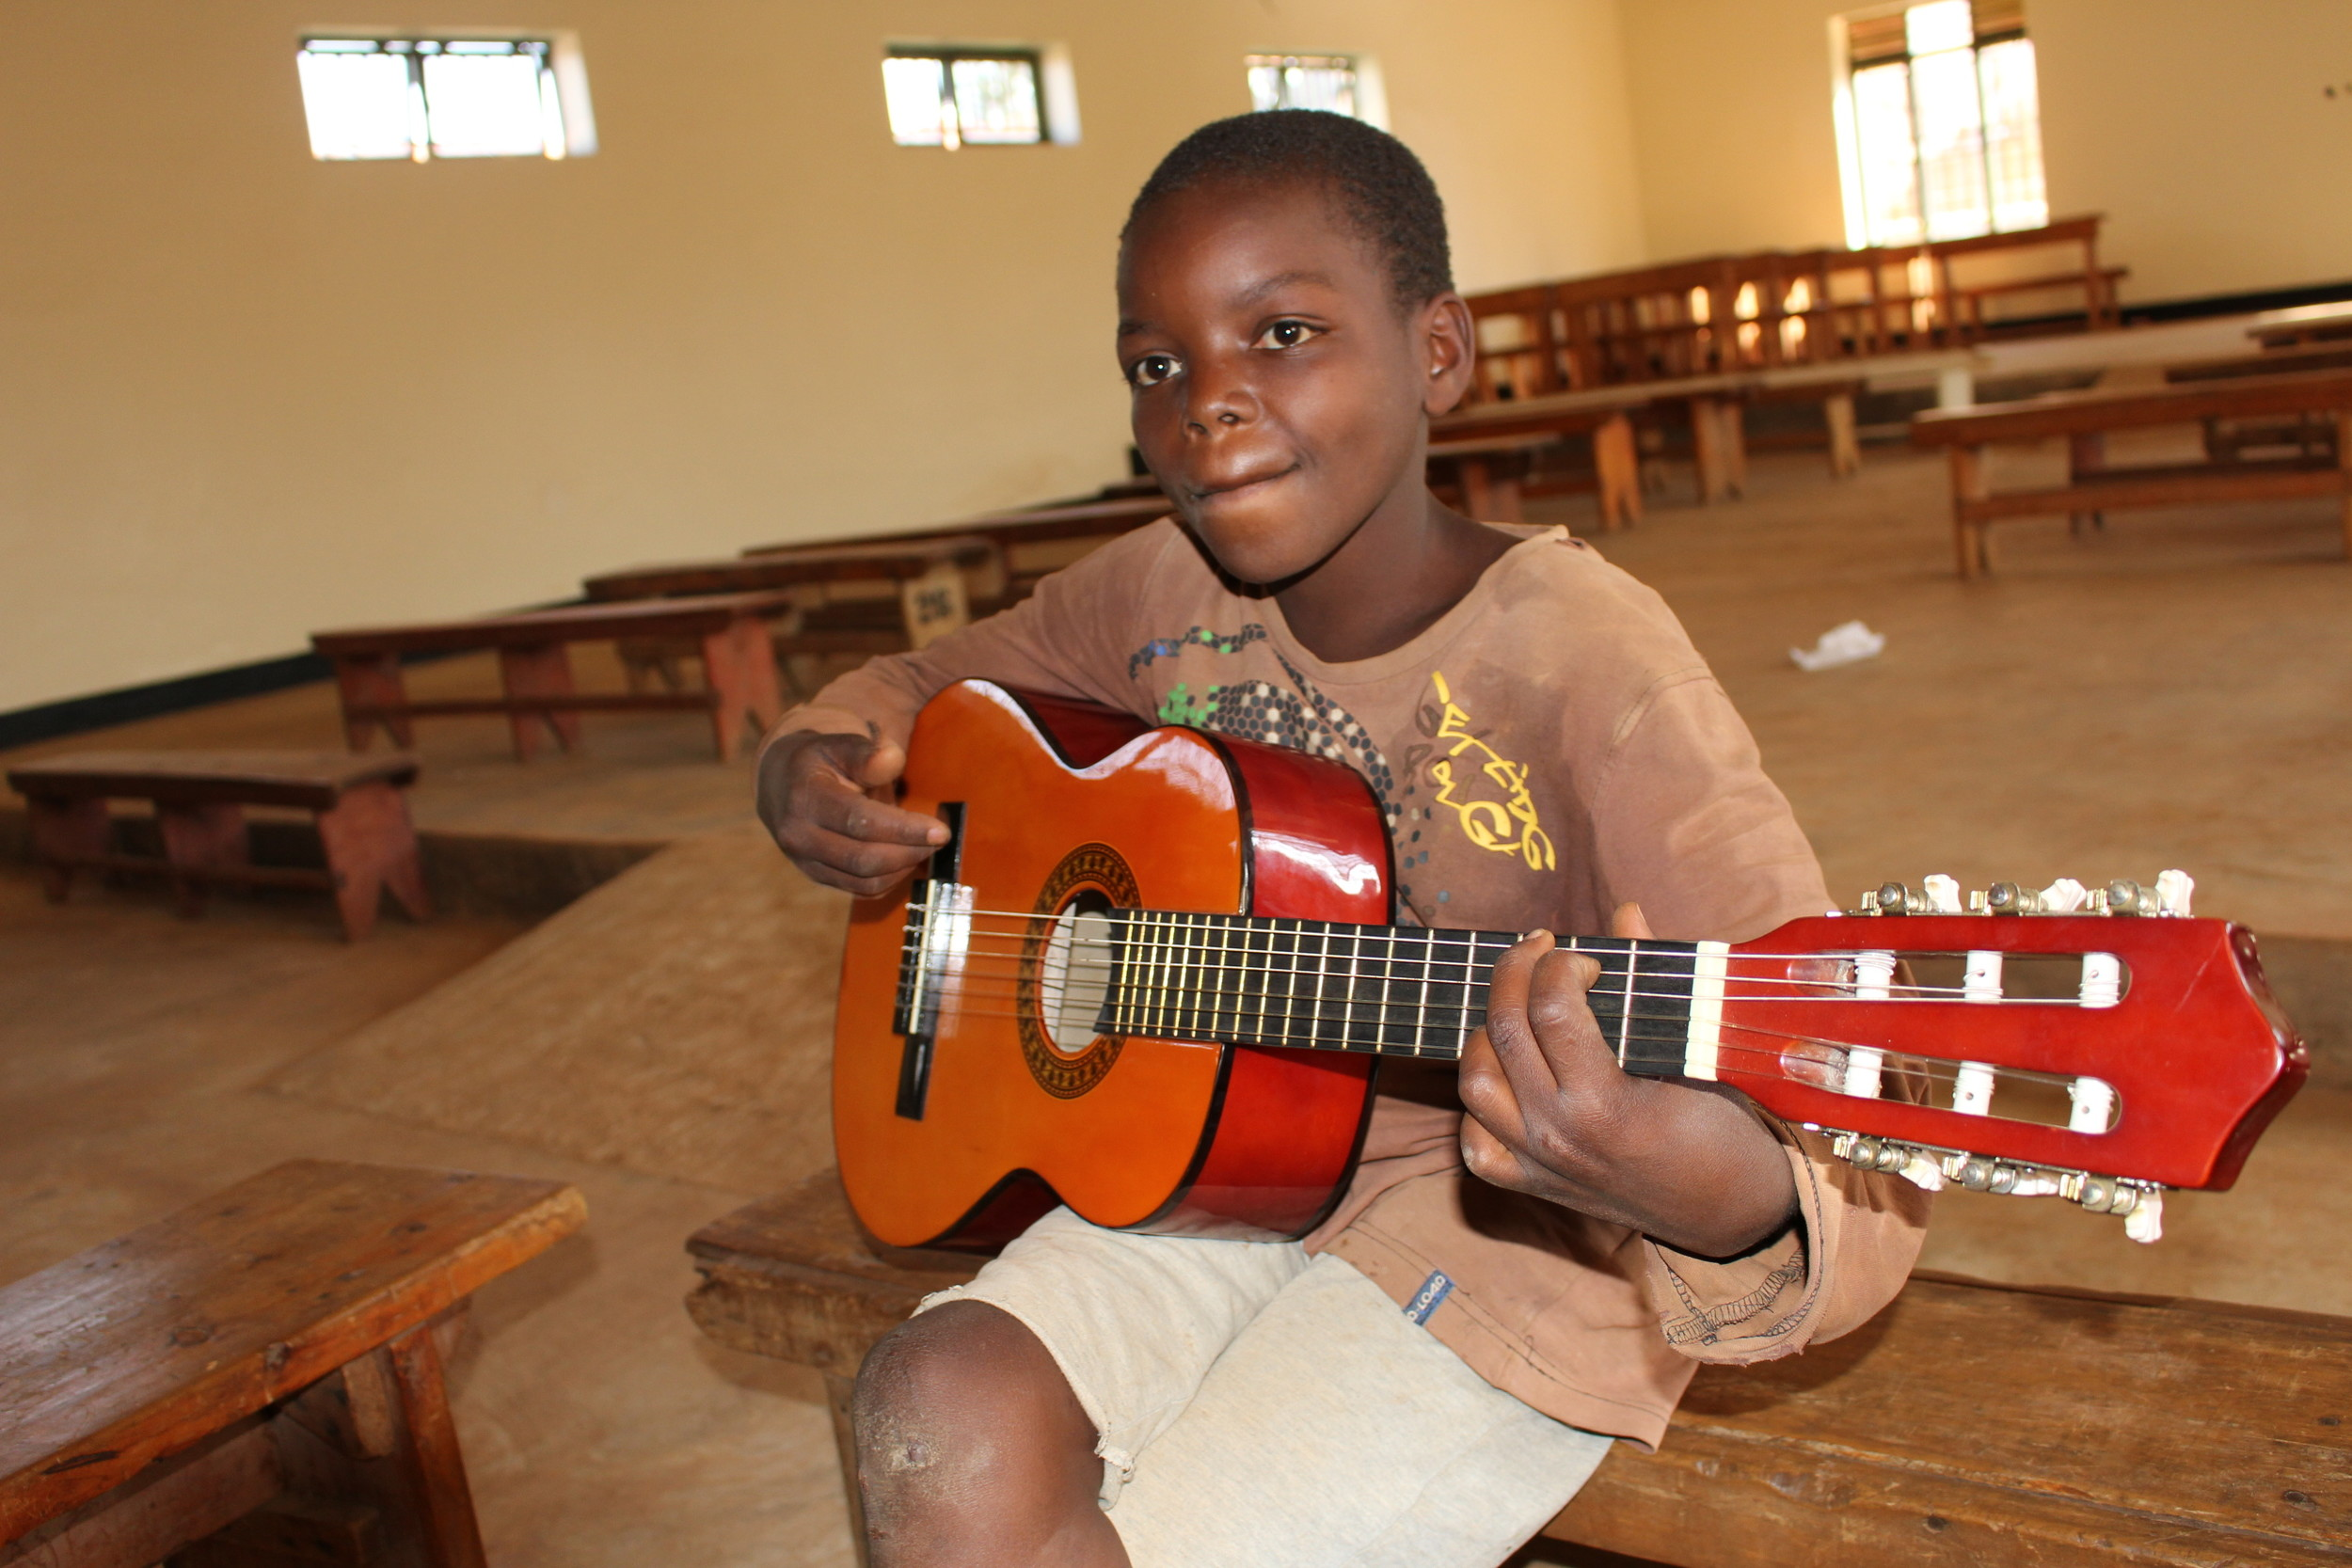 The International Sports and Music Project set up music classes at a child rehabiliatation center in Rwanda. Christopher, above, played his guitar in the class.